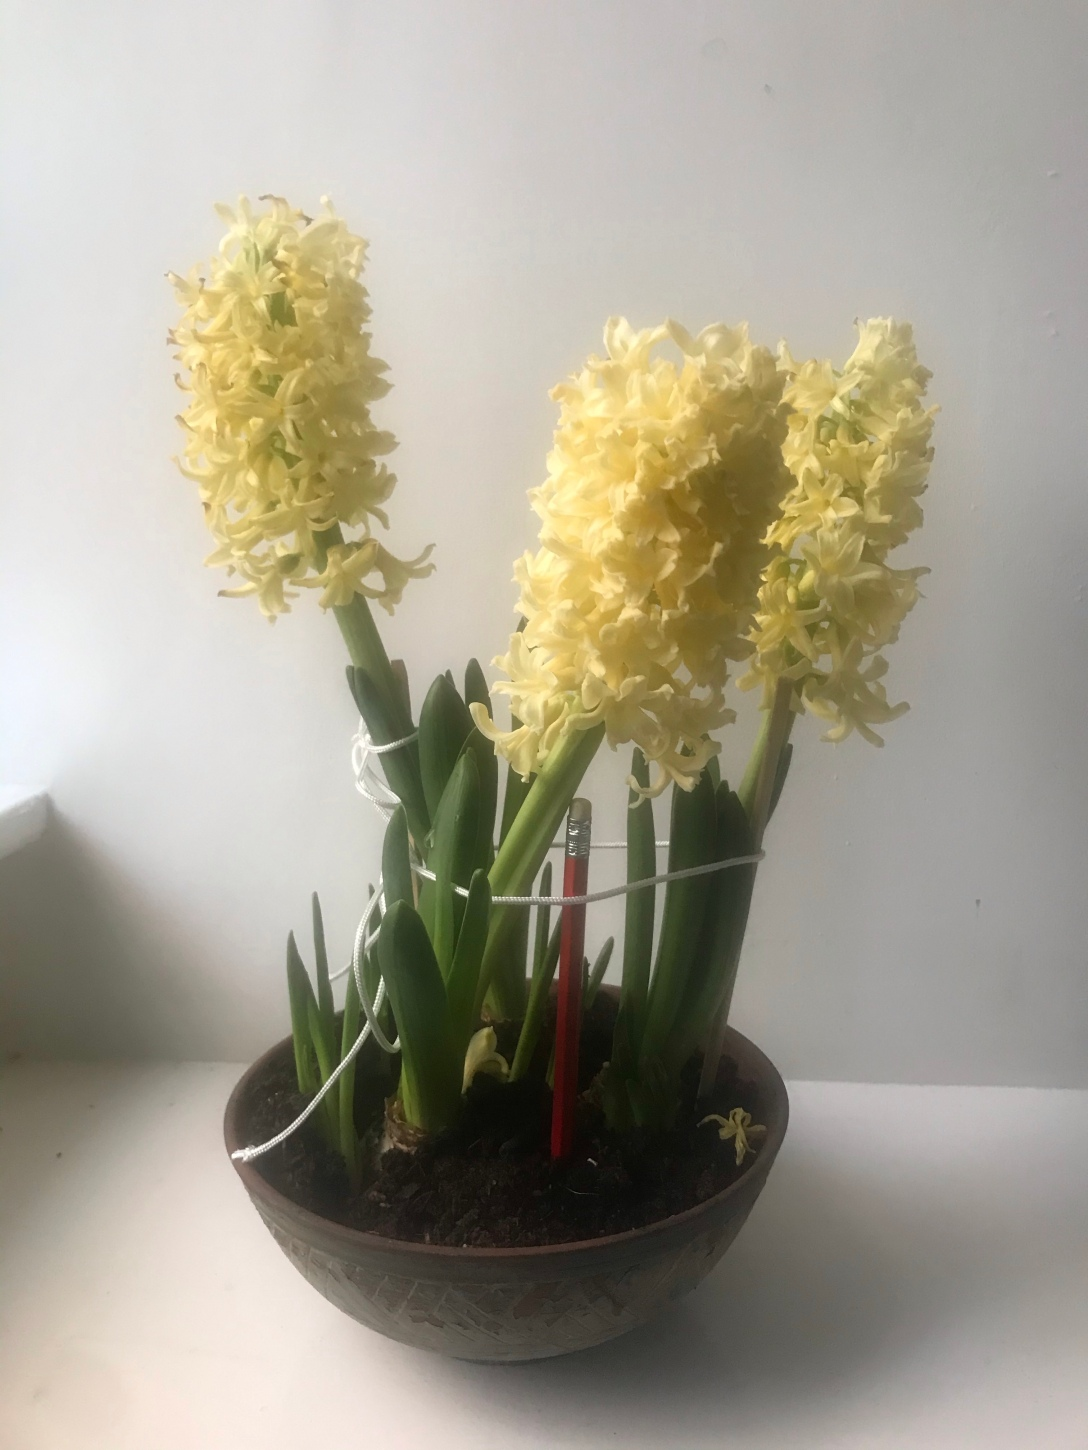 The image is of a bowl of three blooming hyacinths, supported by chopsticks, a pencil, and string.